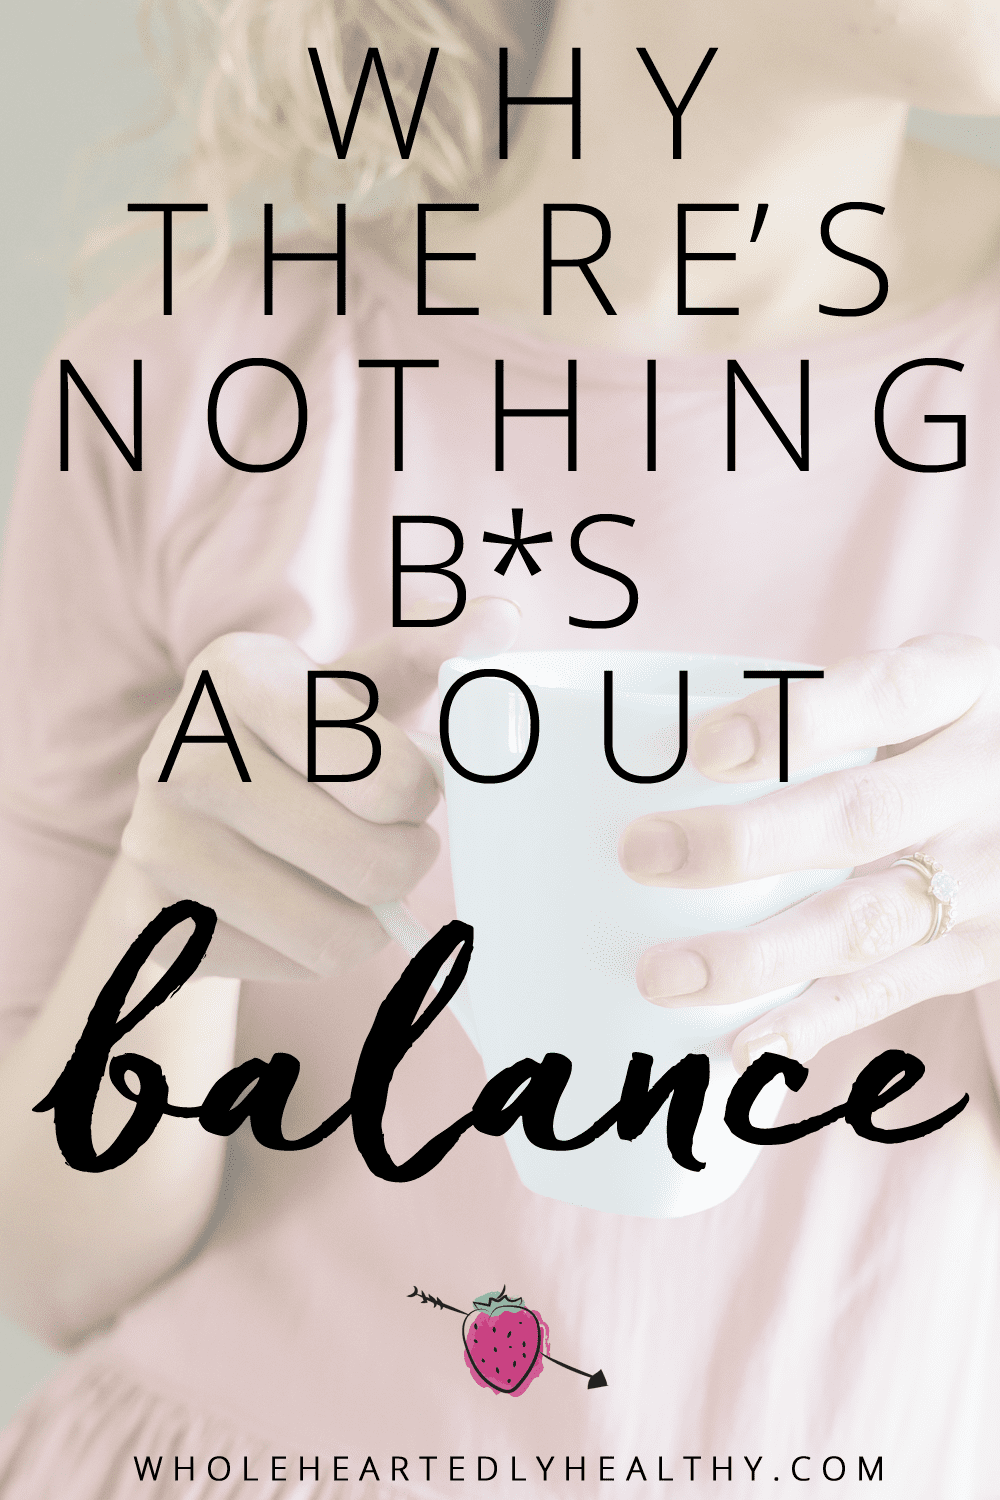 Why there s nothing bs about balance